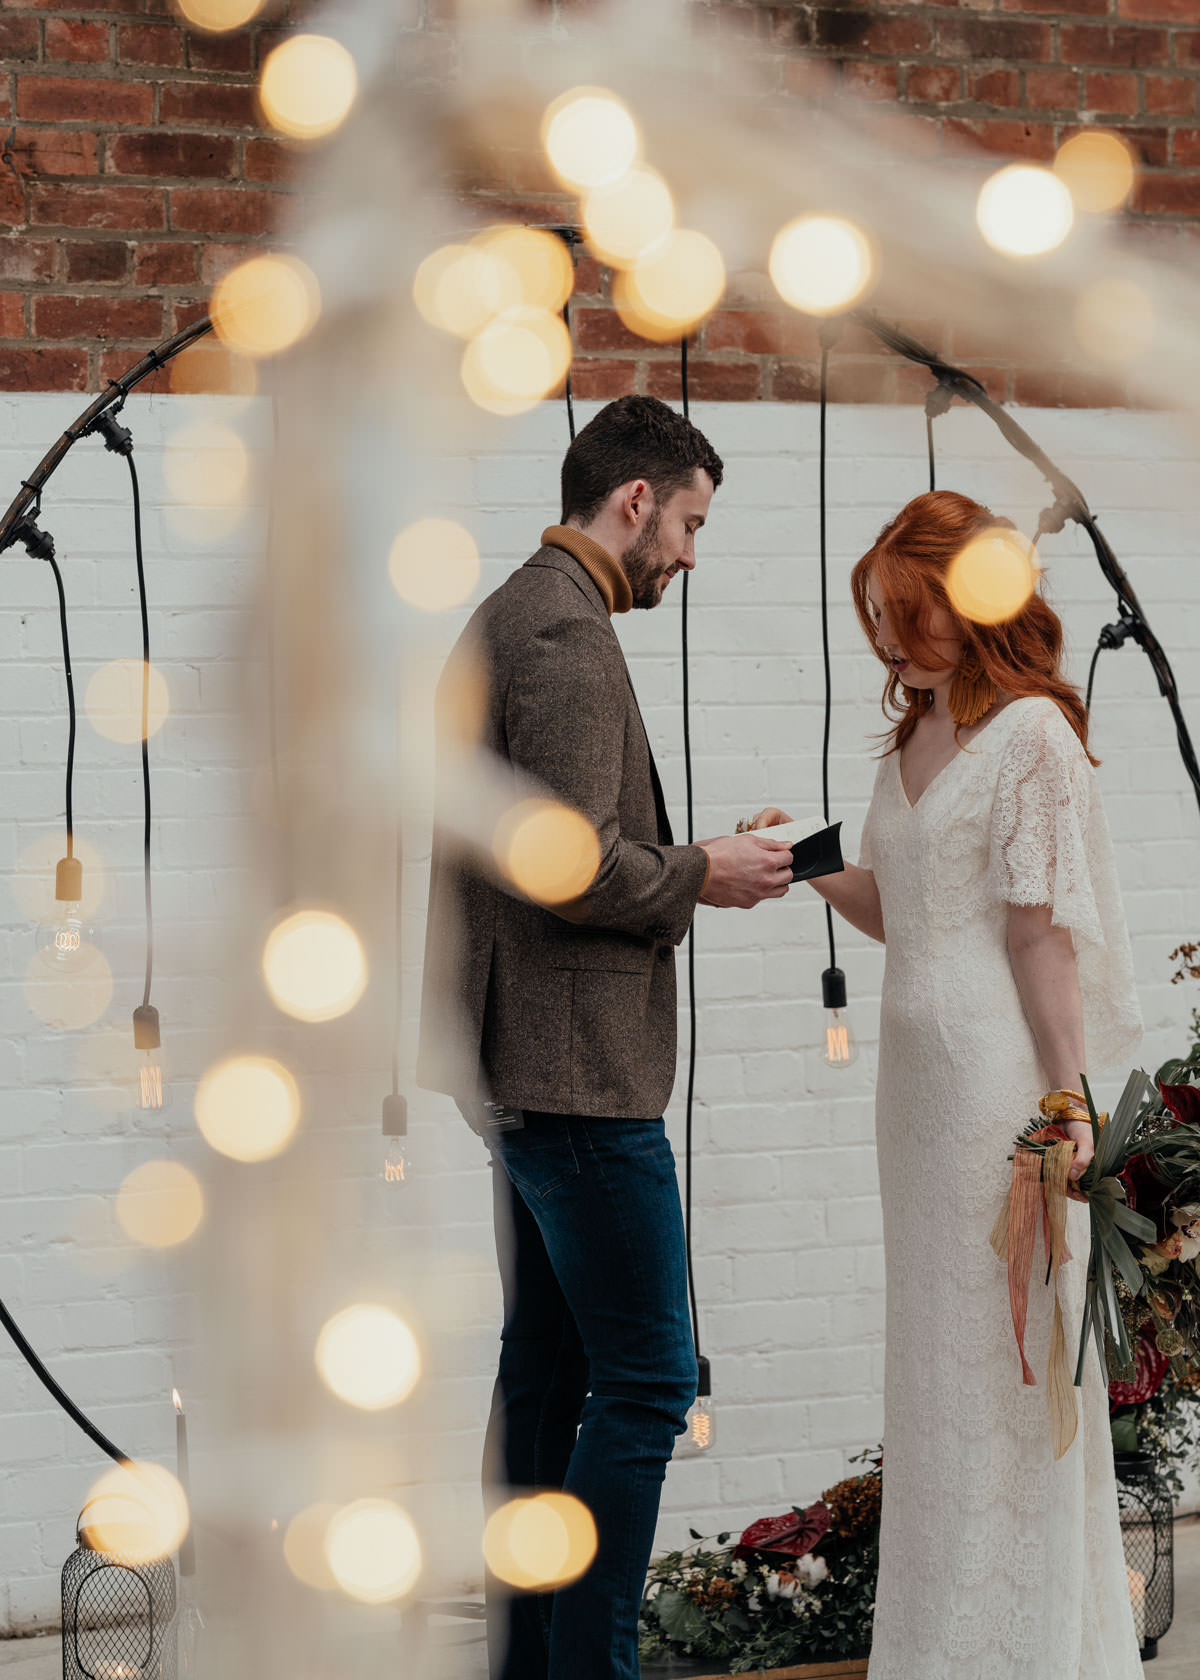 Industrial Meets Boho Wedding Inspiration: Ceremony with Pendant light archway